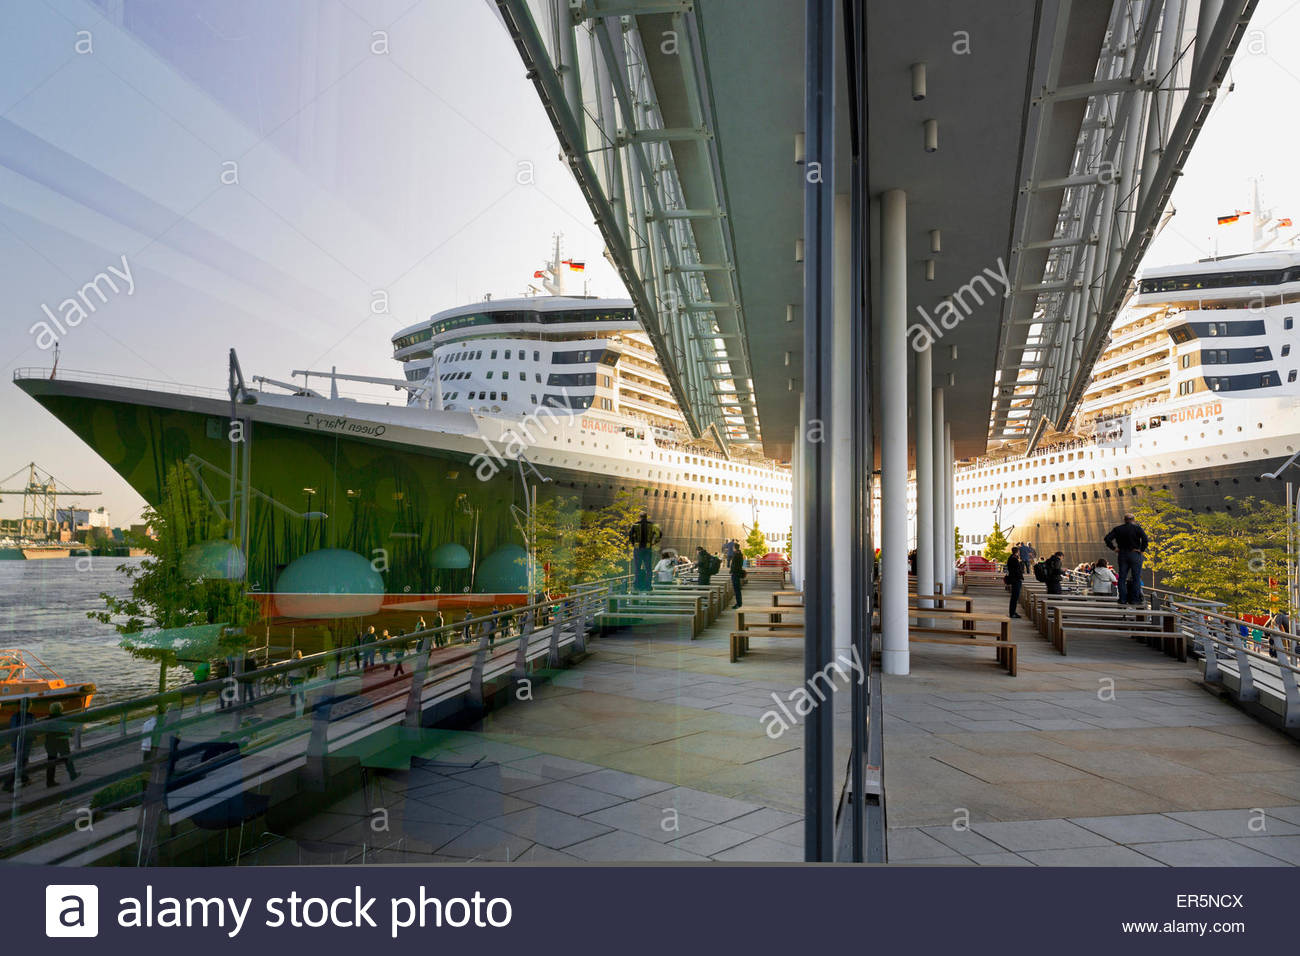 Queen Mary 2 at Chicagokai, reflection in the facade of the Unilever building Hamburg Cruise Center, Hamburg, Germany - Stock Image